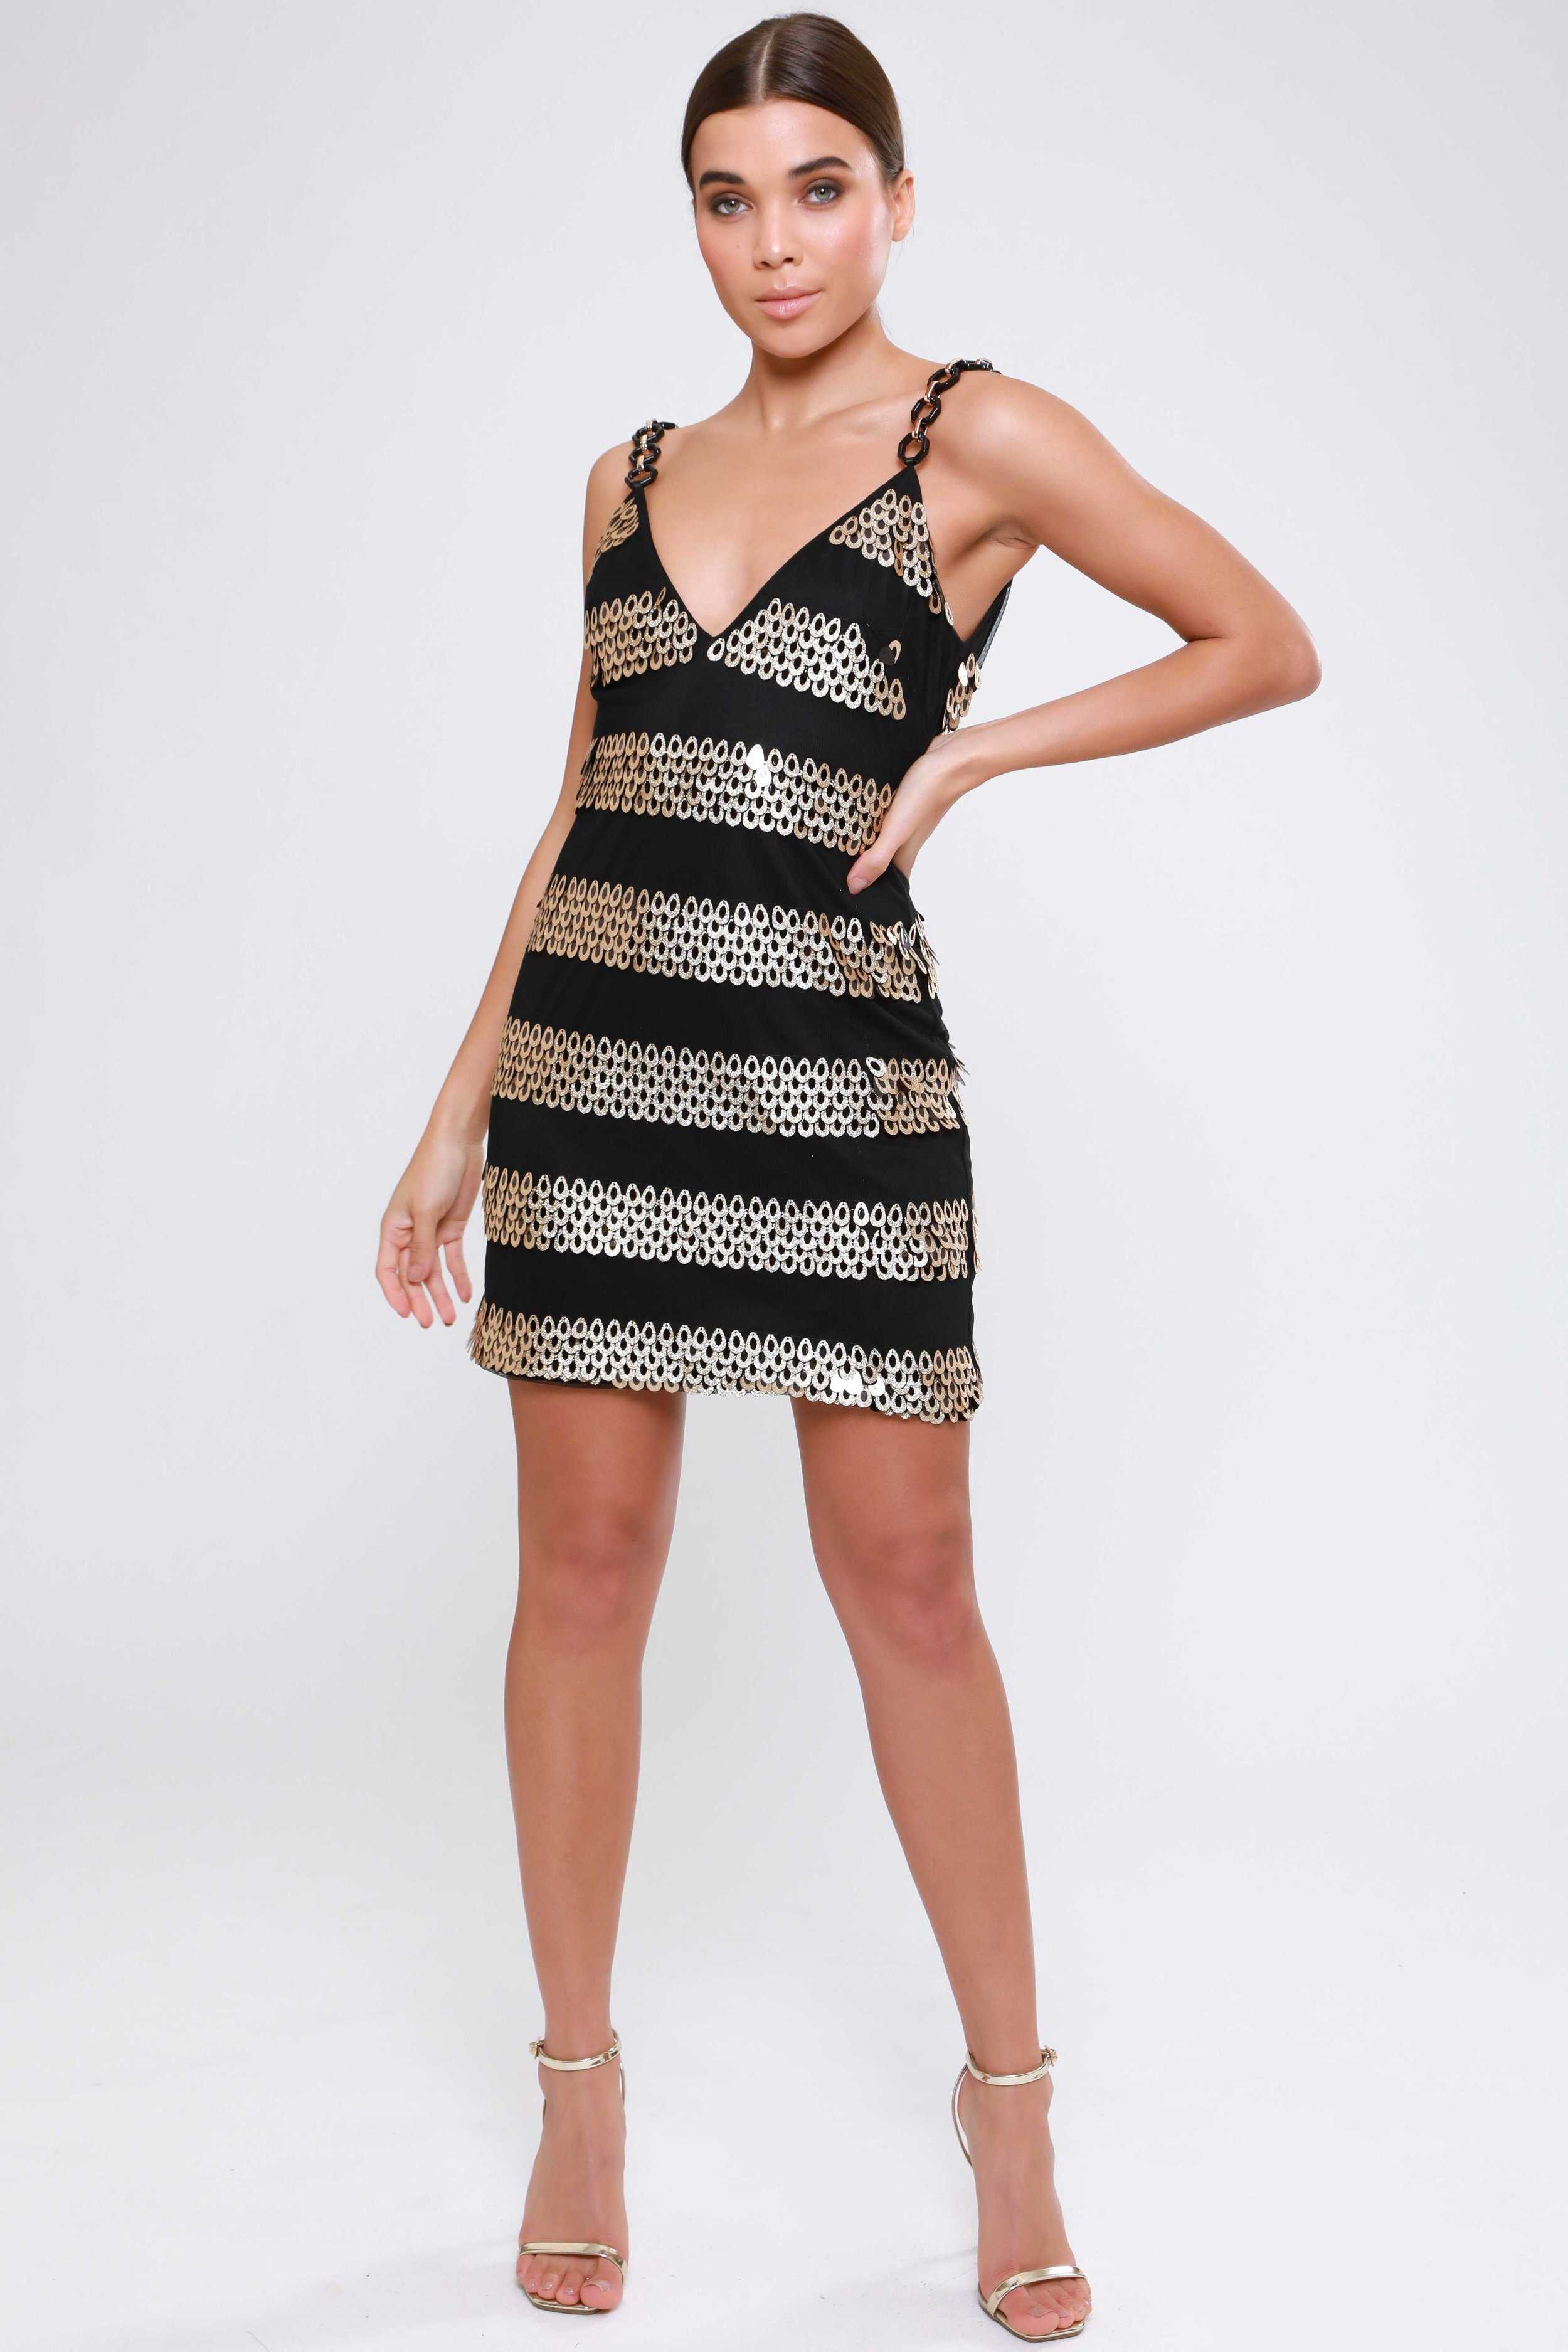 Sequin Dress with Geometric  Chain Straps   £75.00